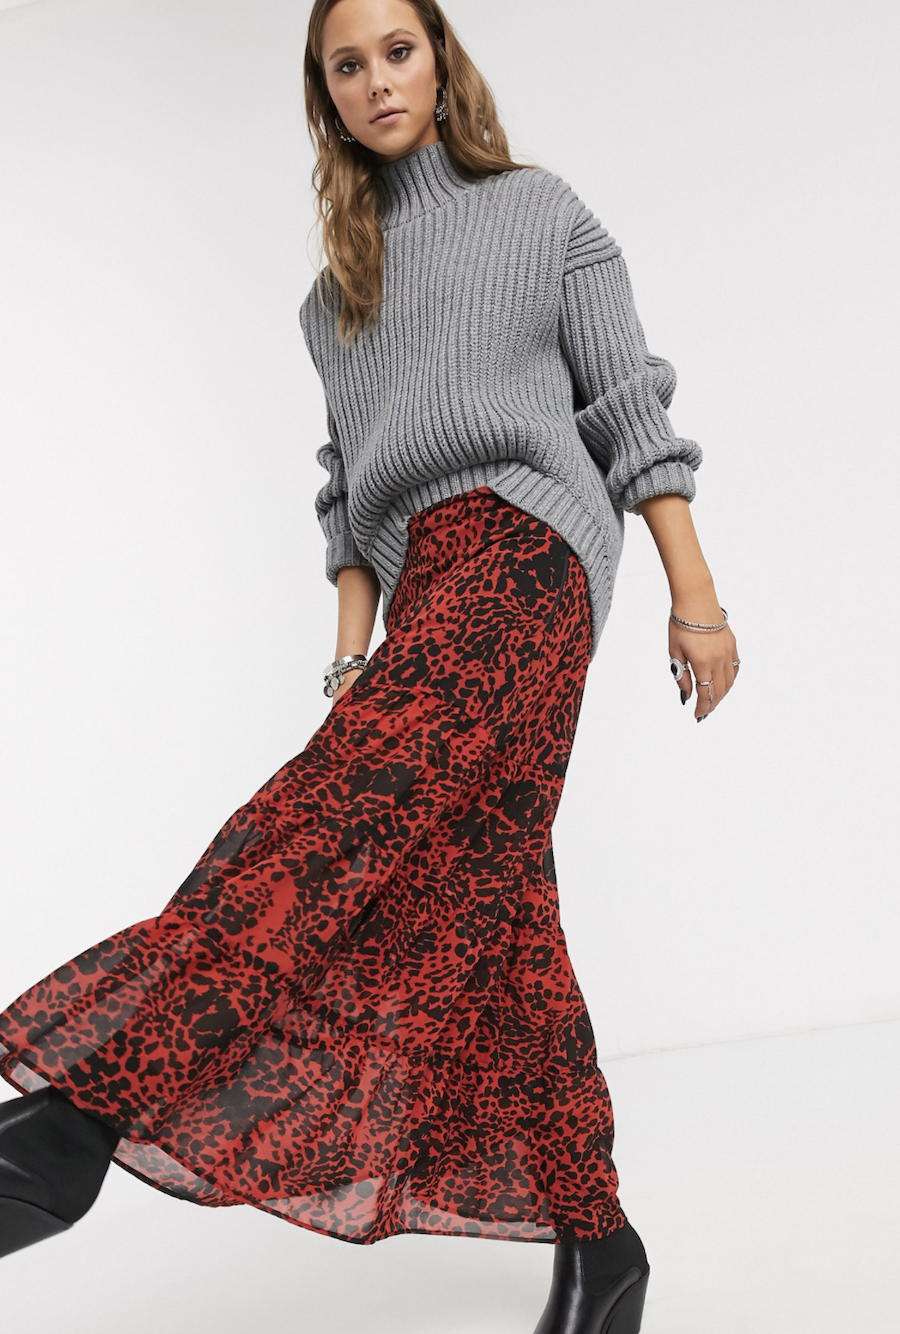 Long skirt with ruffles on the low energy Religion